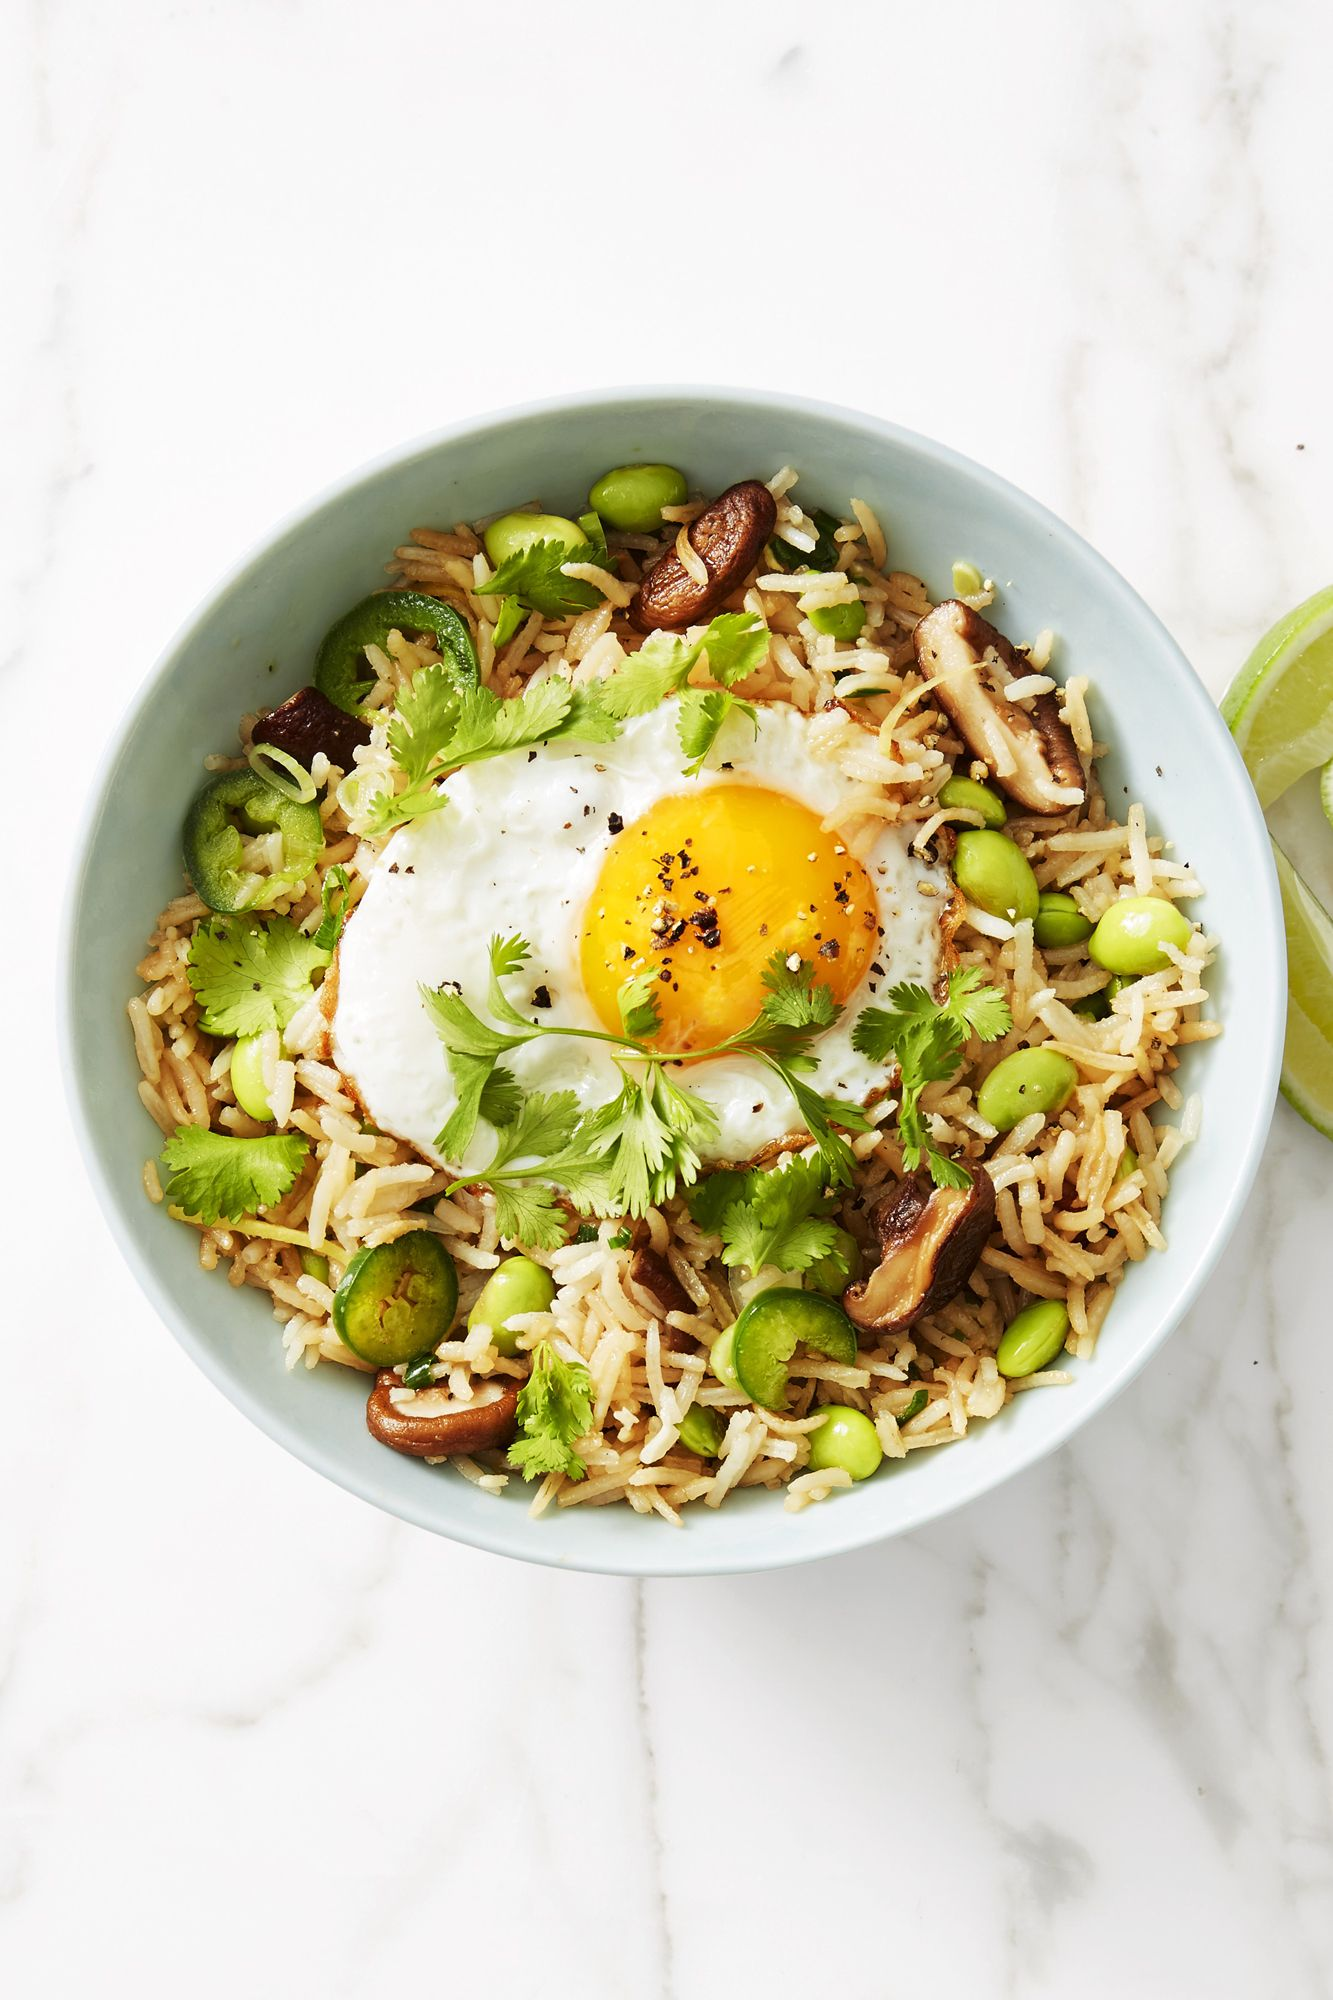 Vegetarian Fried Rice with Shiitakes and Edamame